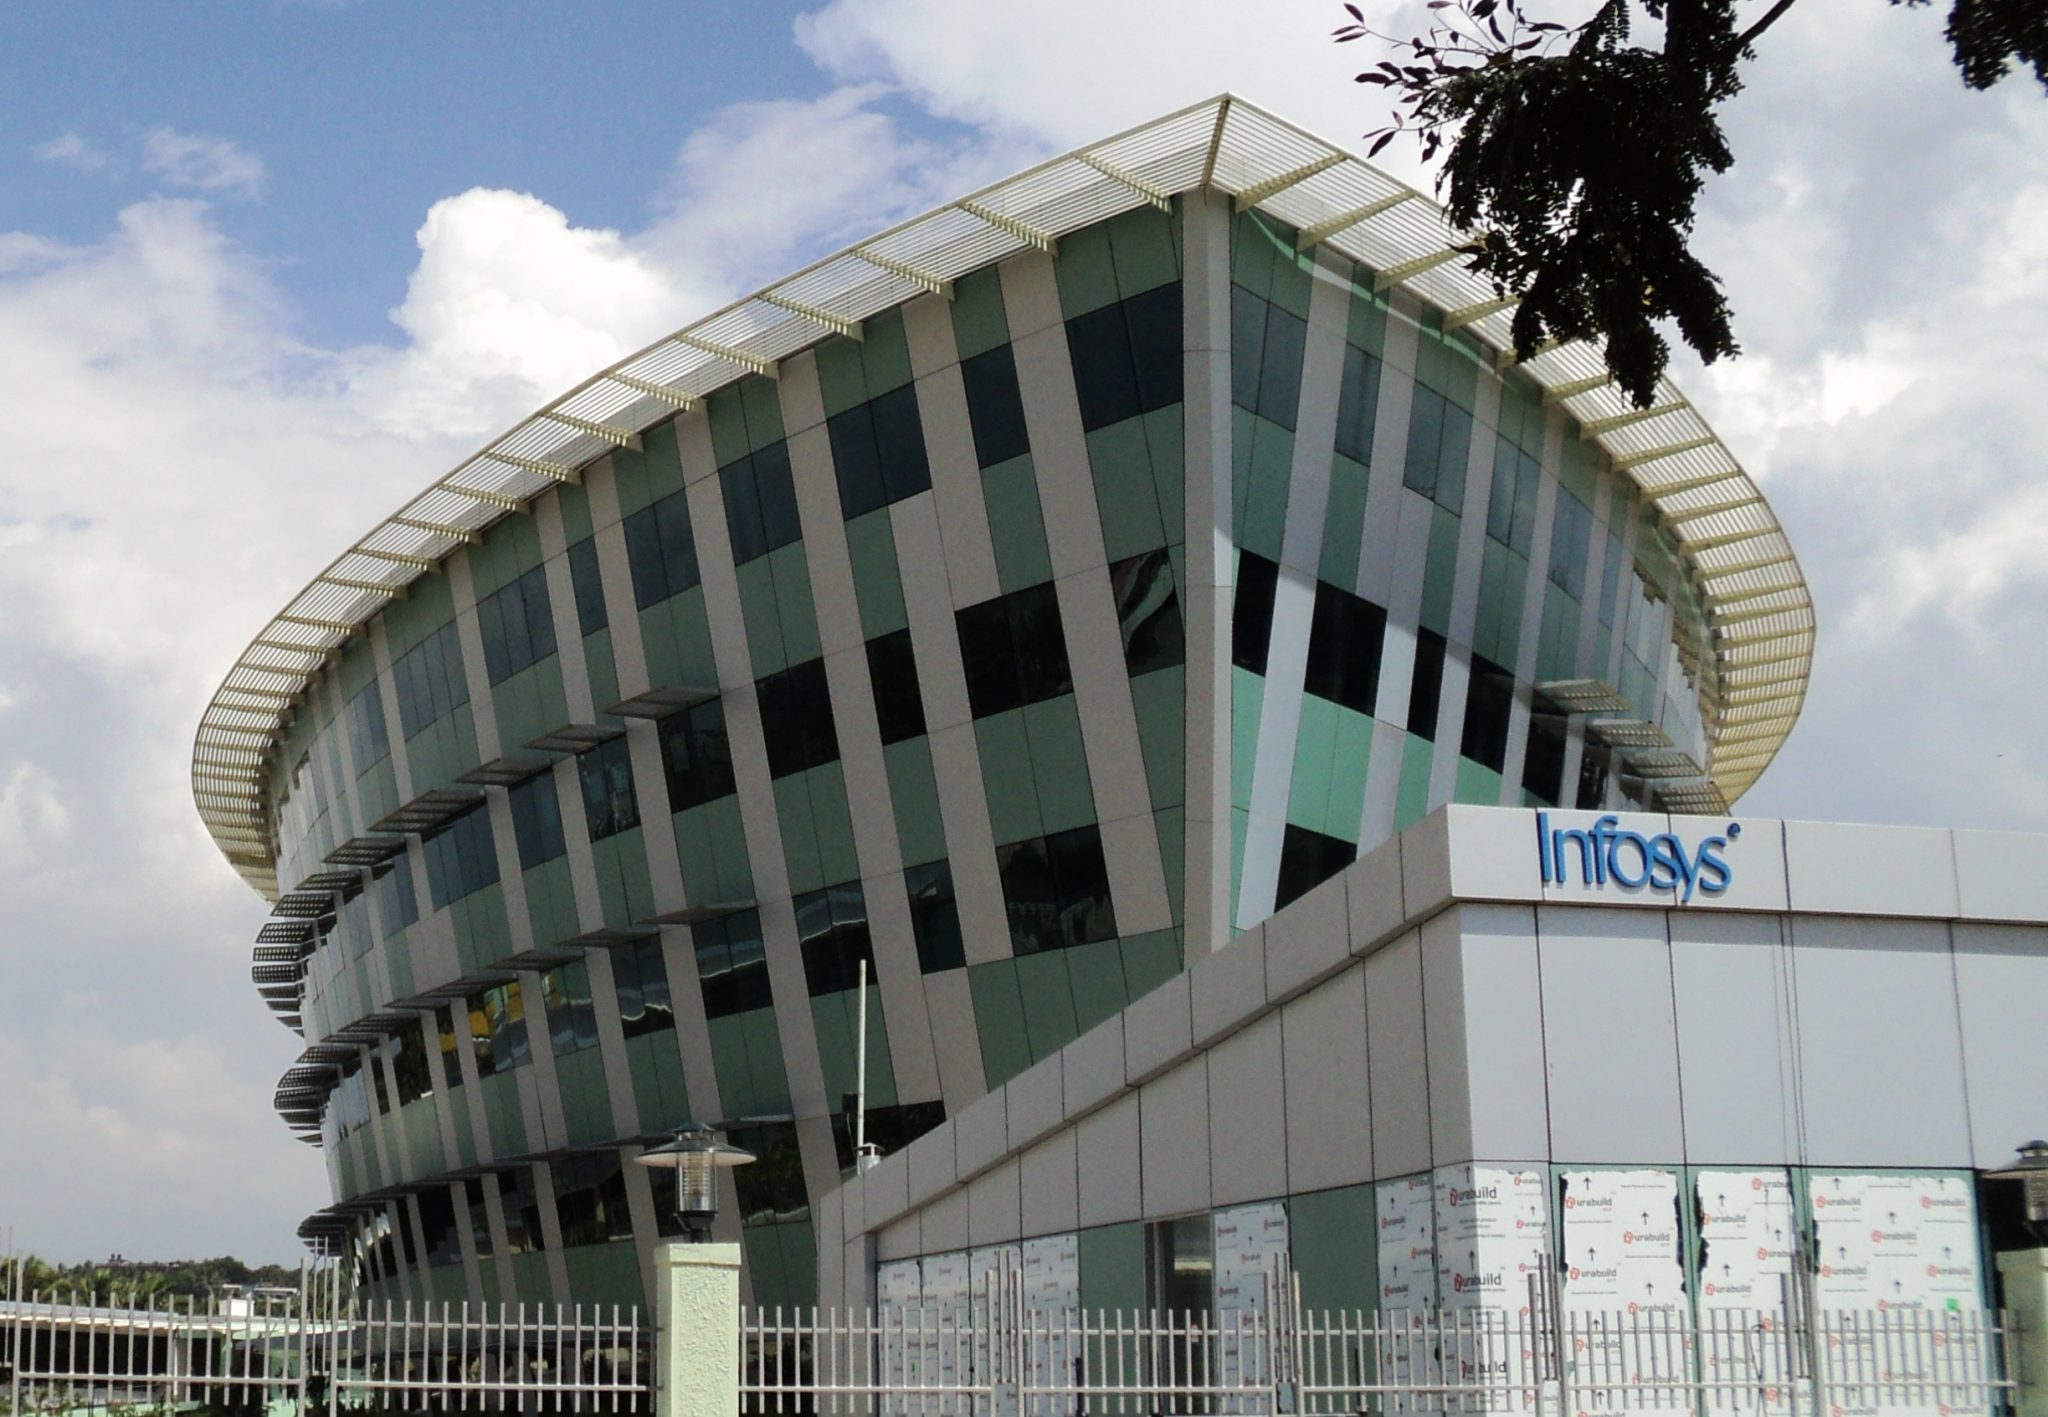 groups infosys share buyback - HD2048×1417